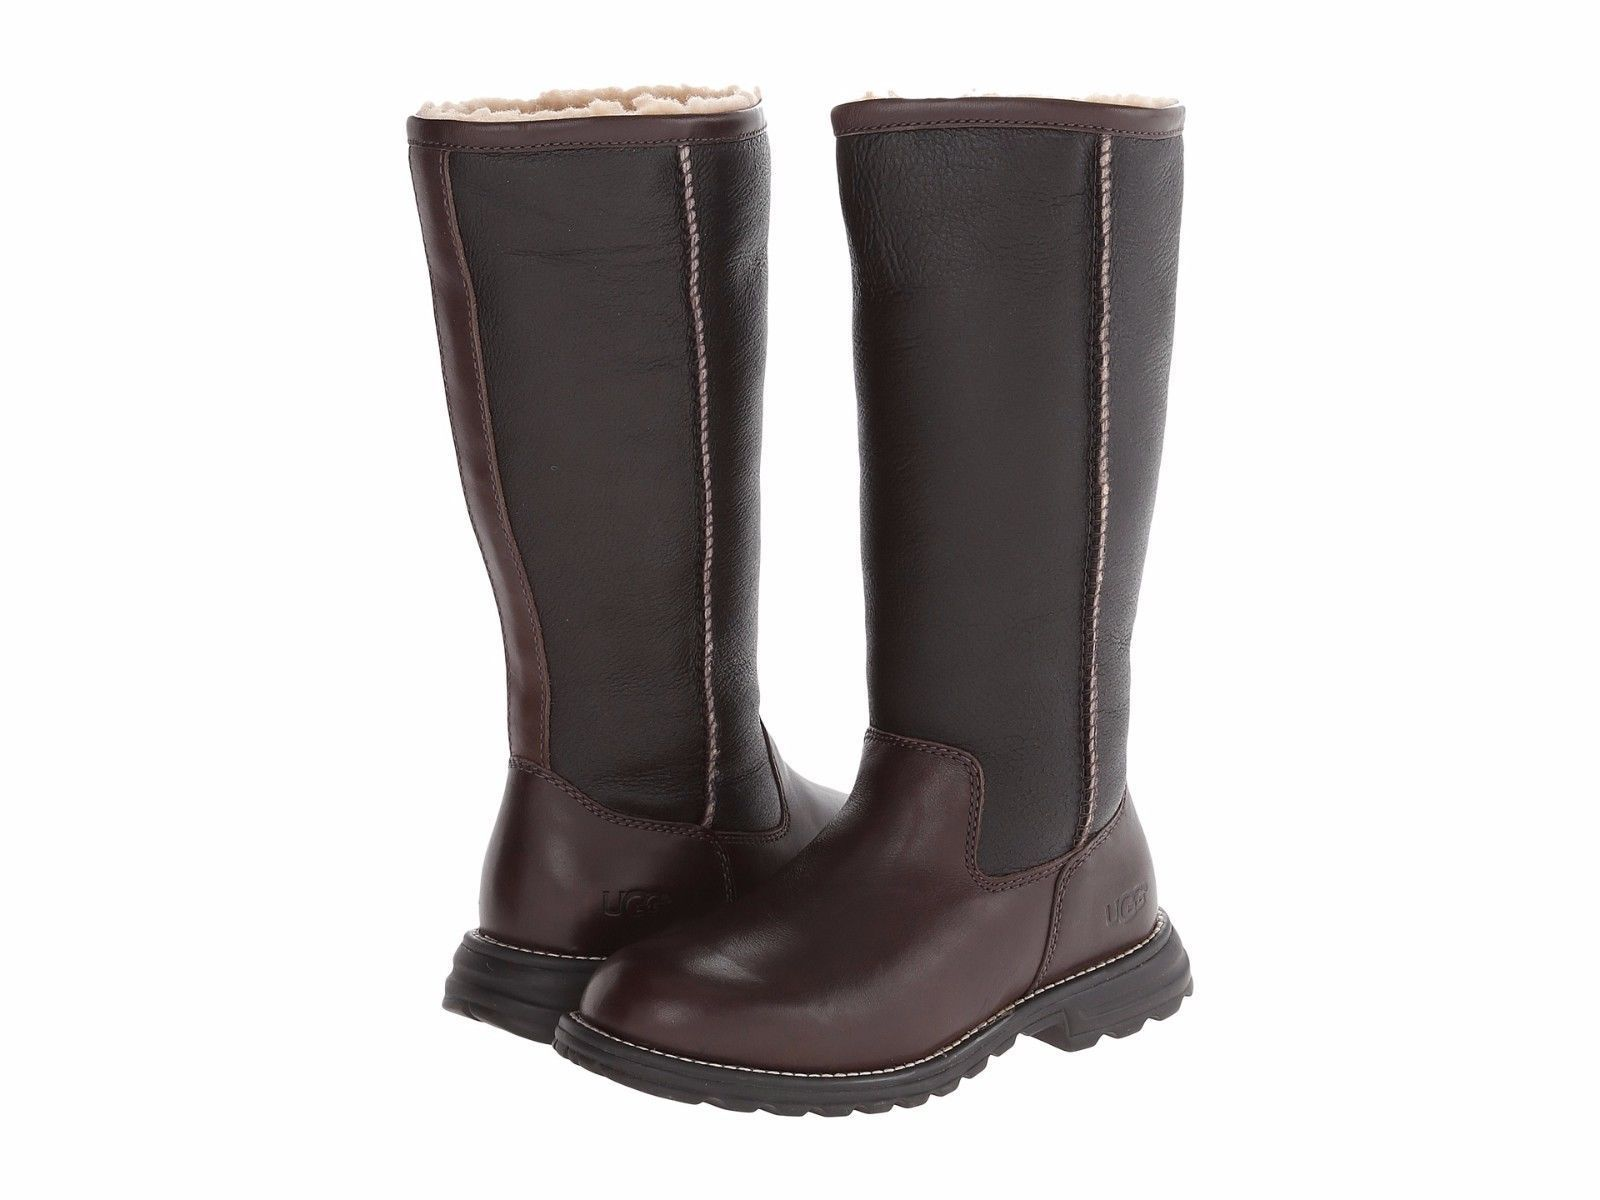 Women's Shoes UGG Brooks Tall 5490 Leather Boots Brown ...